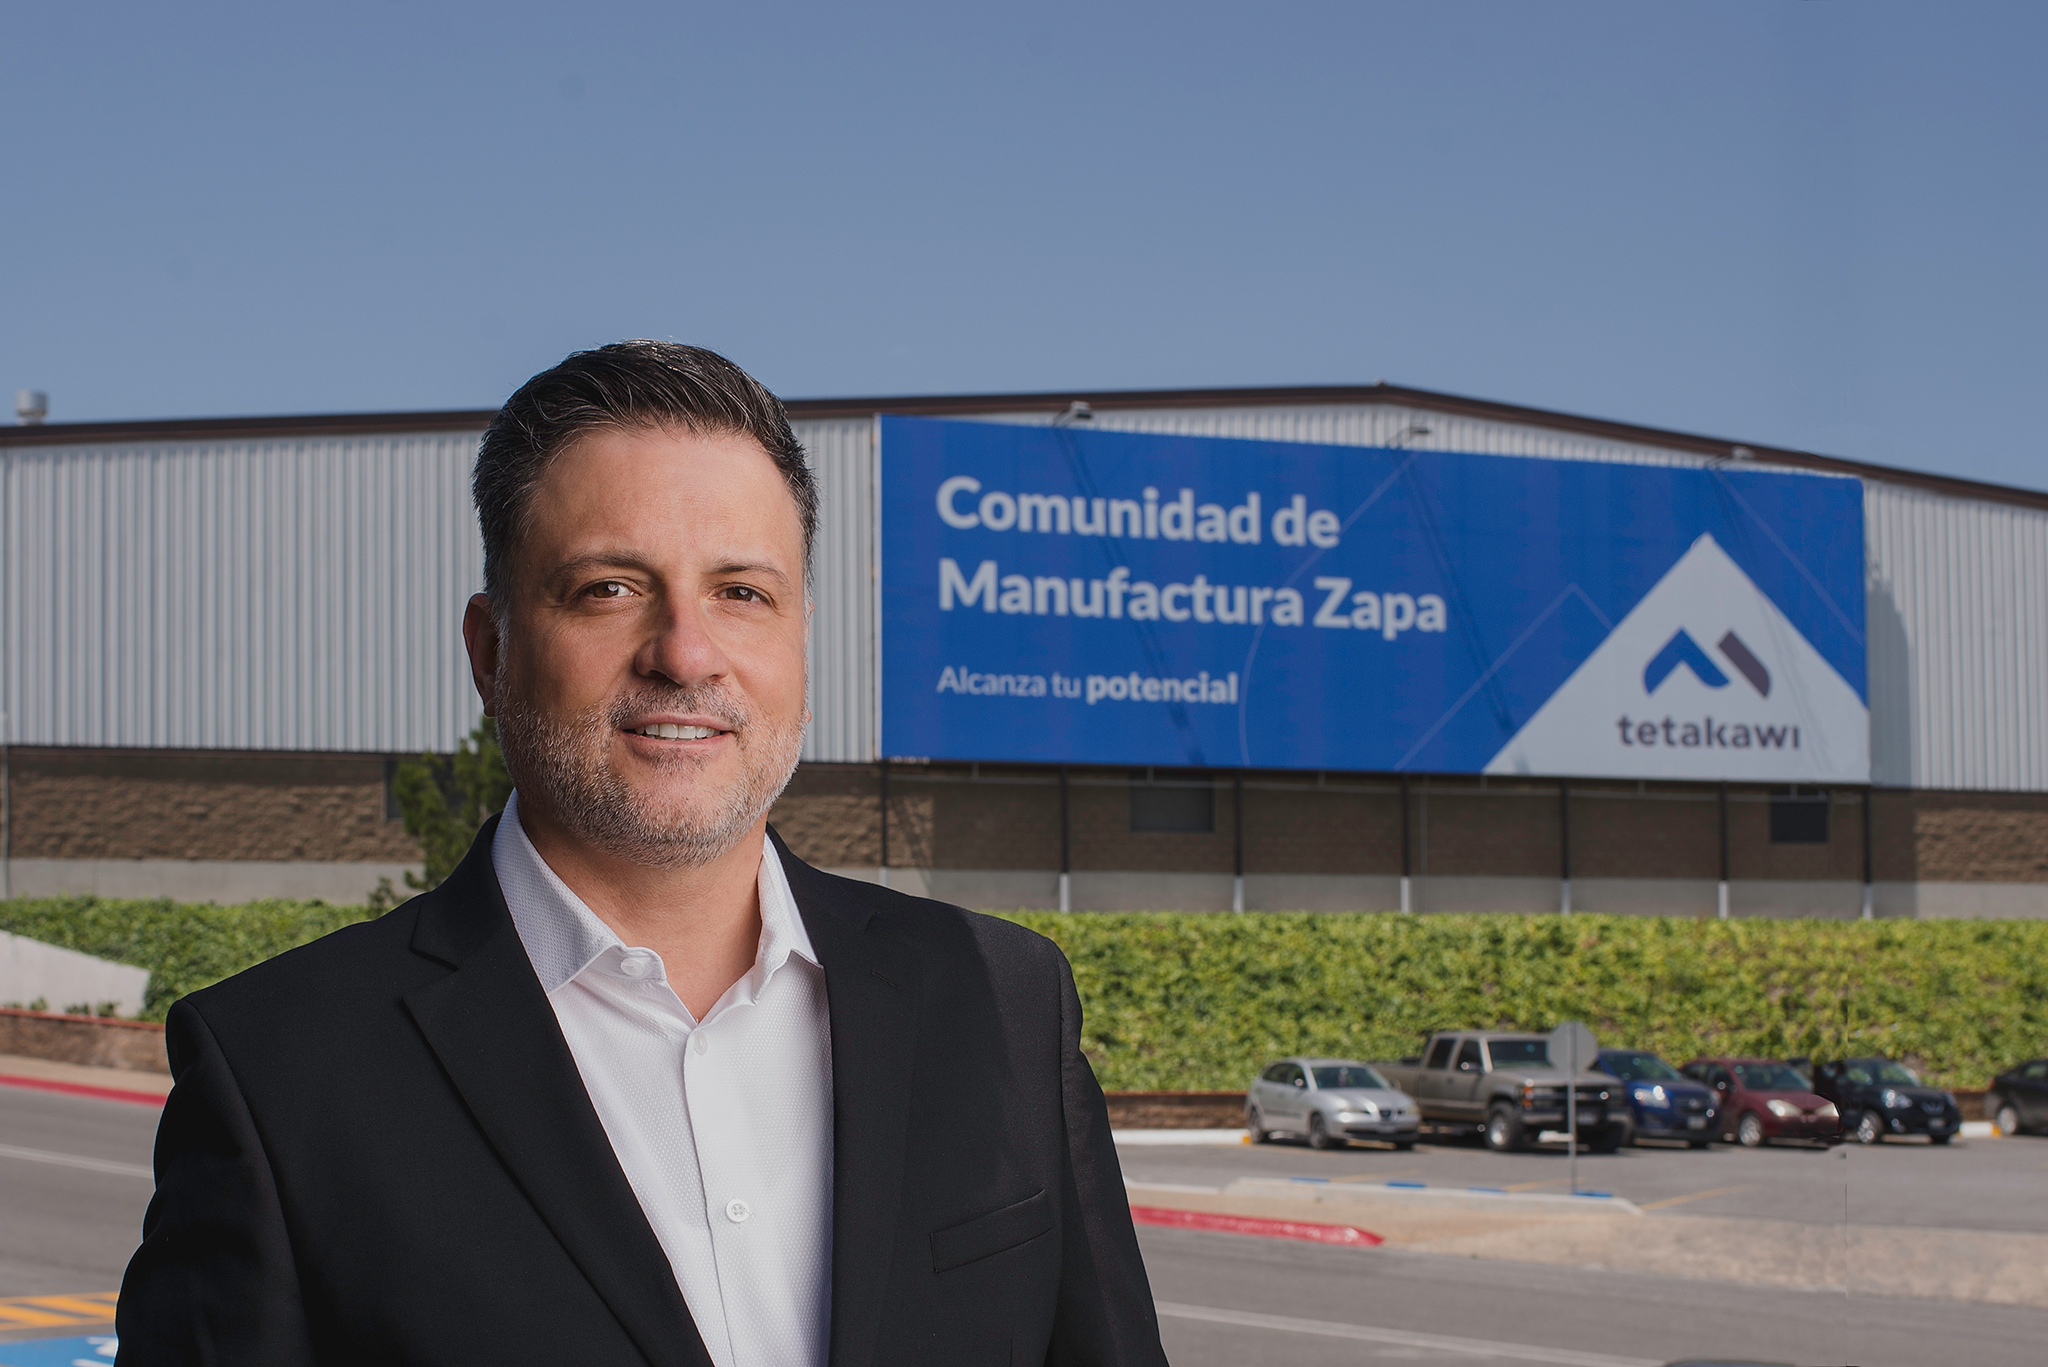 Rafael Amar - General Manager of Zapa Manufacturing Community